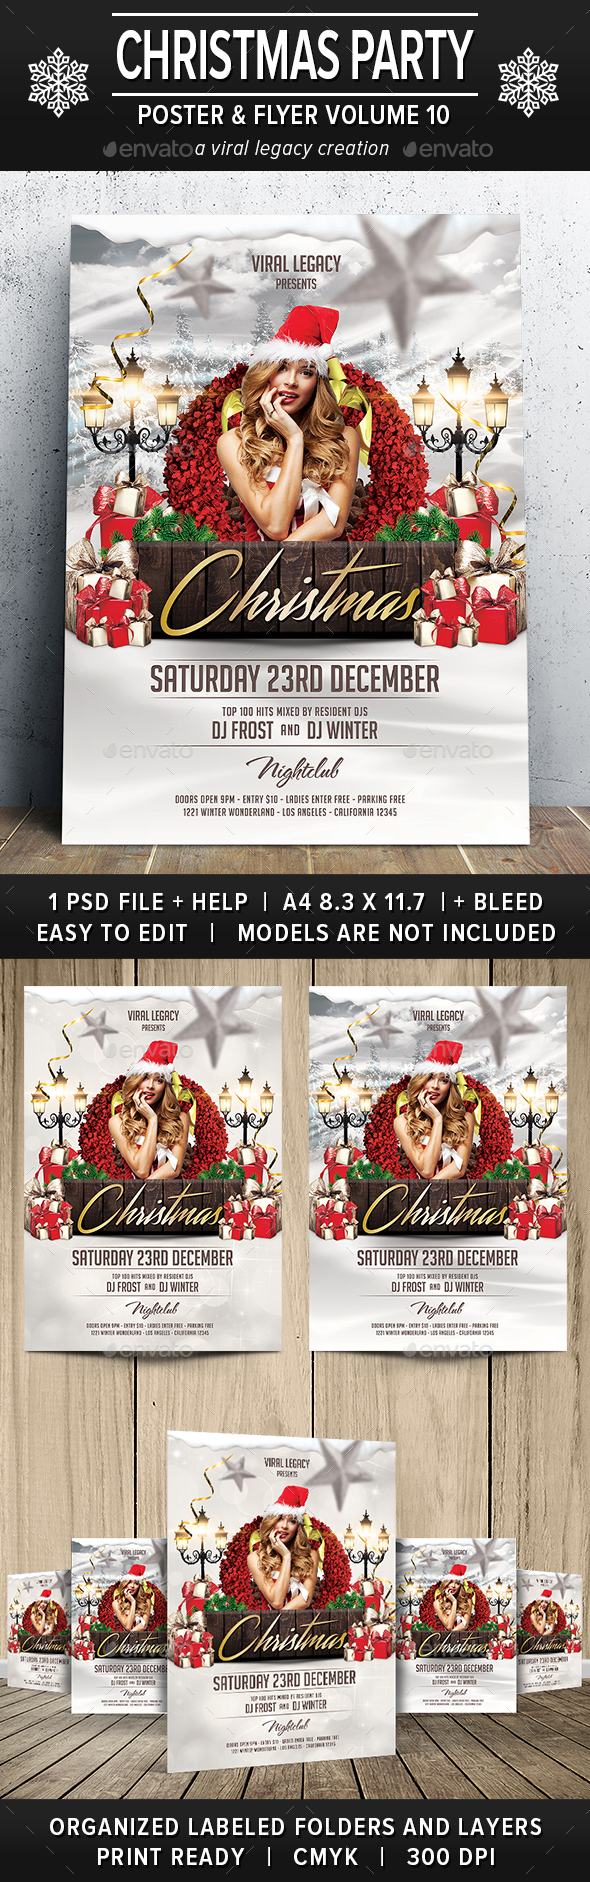 Christmas Party Poster / Flyer V10 - Flyers Print Templates